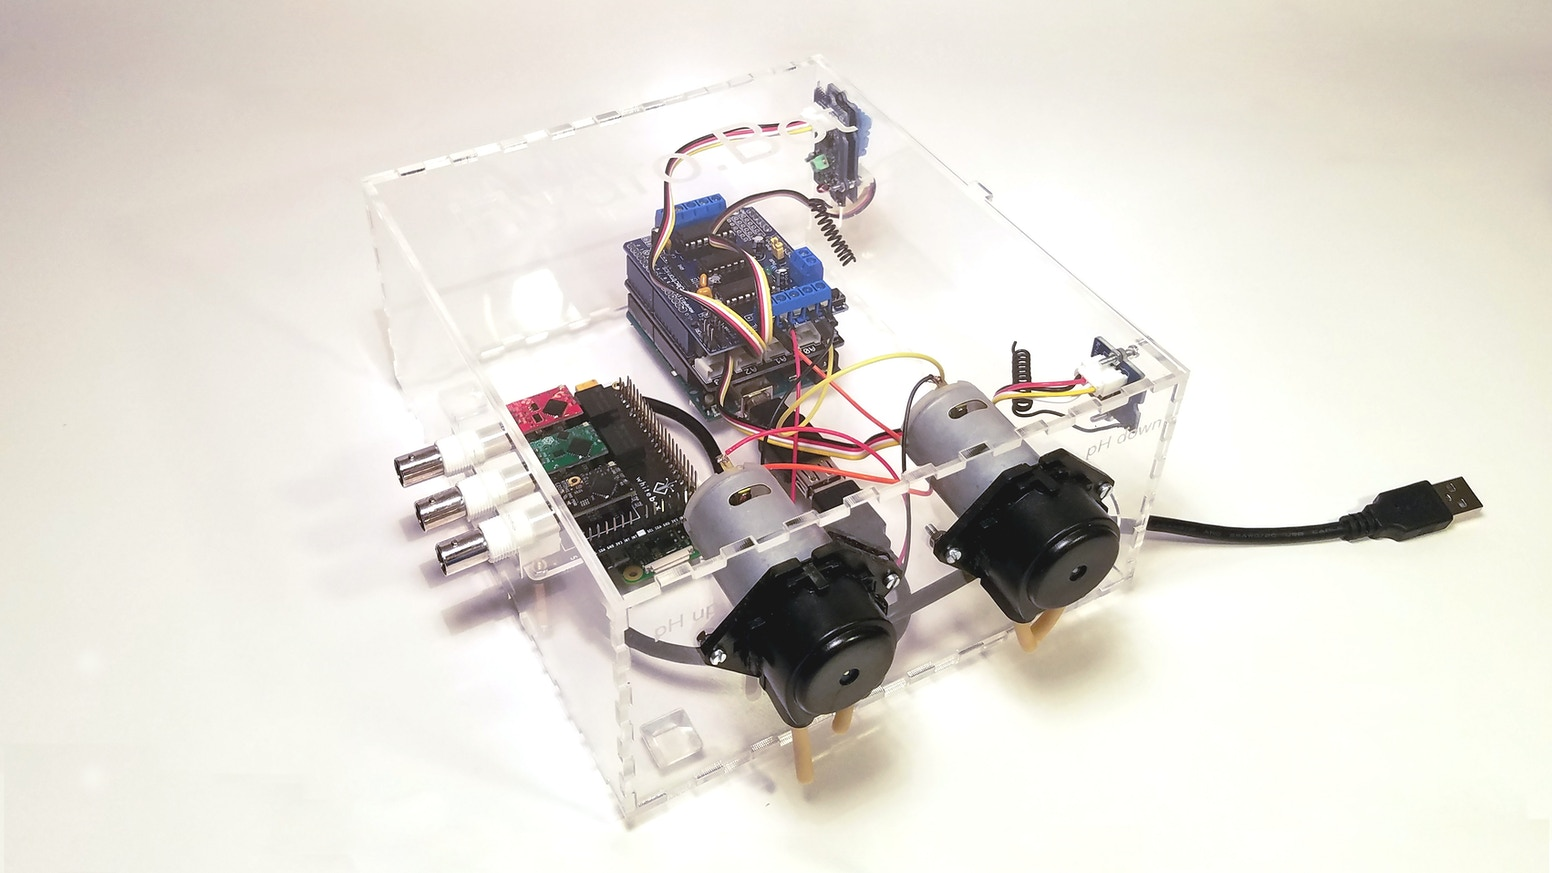 A small device that allows you to automate your hydroponics system. We're Making Hydroponics Accessible to everyone.